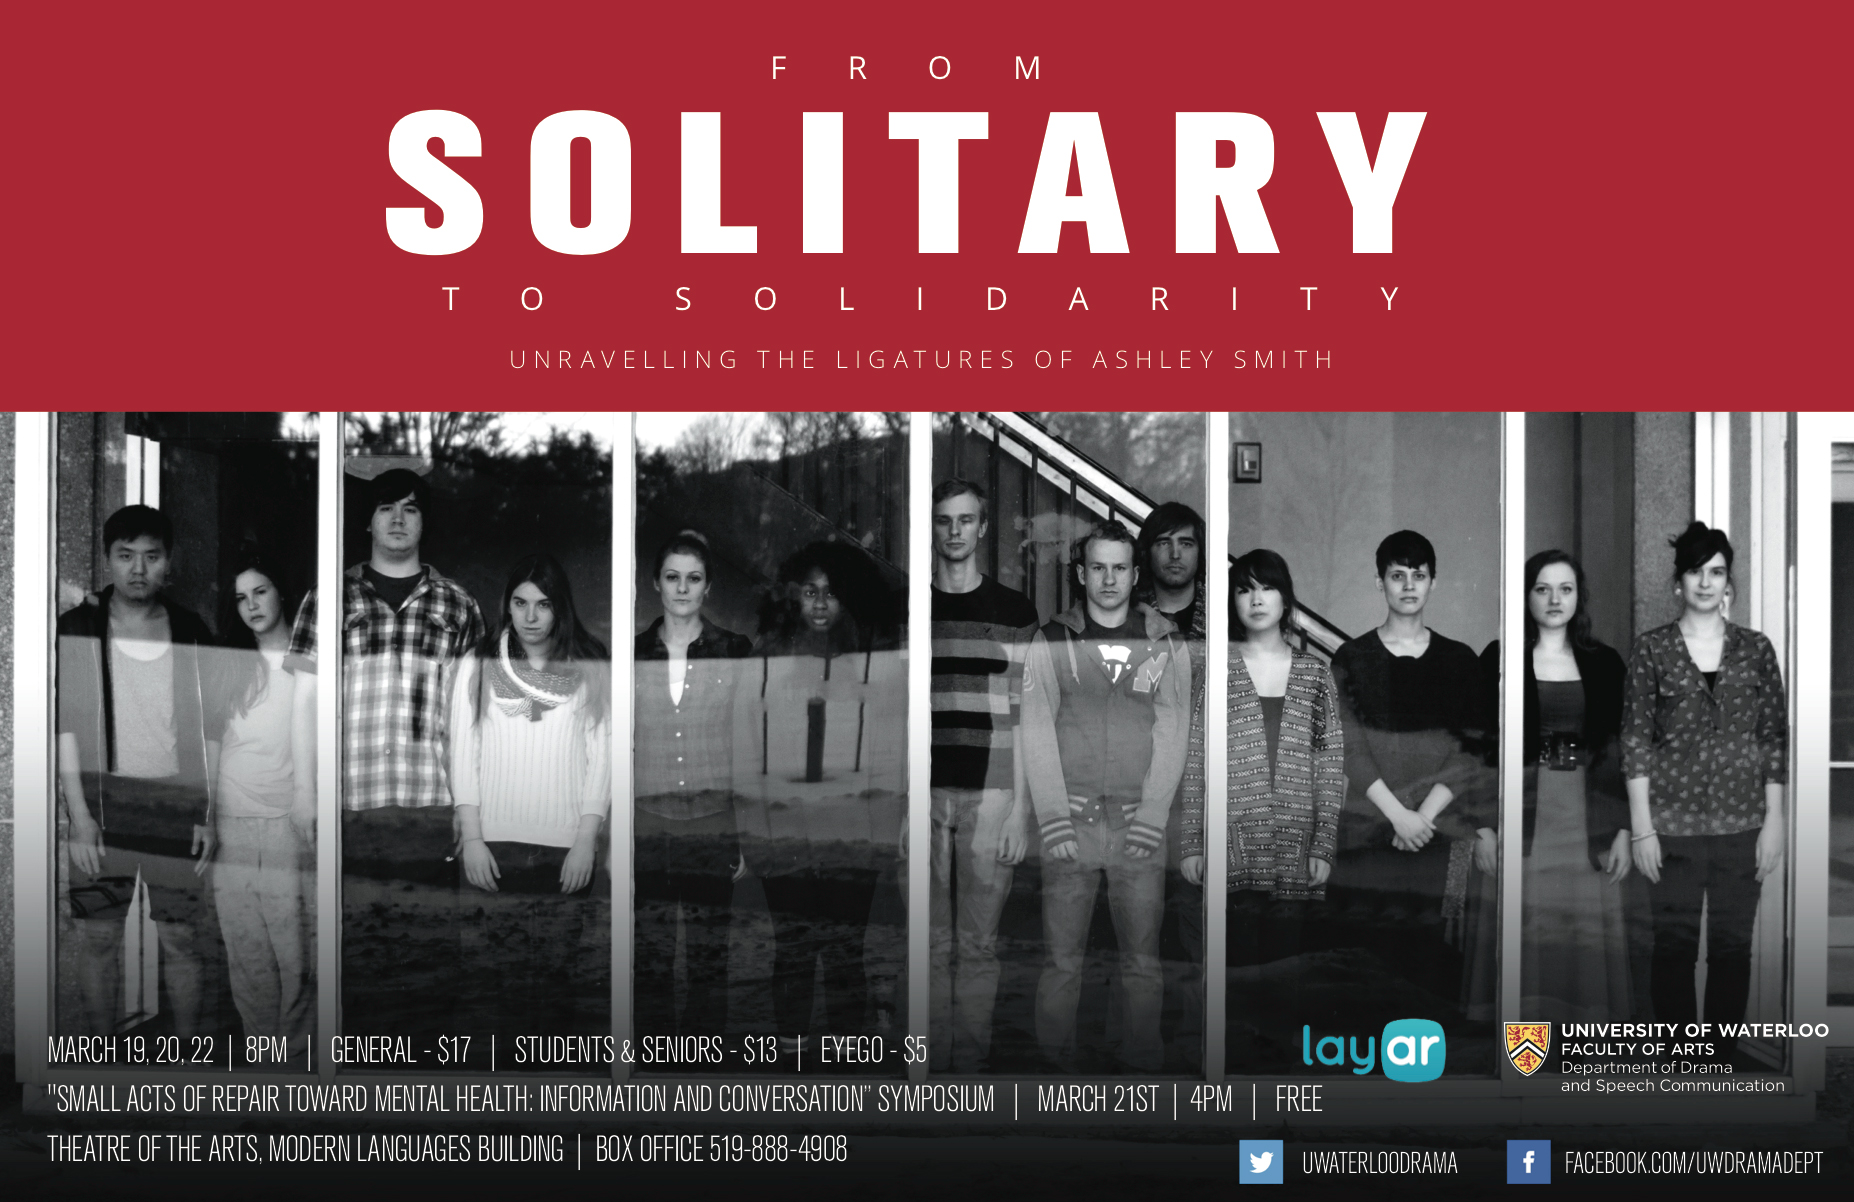 Poster for From Solitary to Solidarity